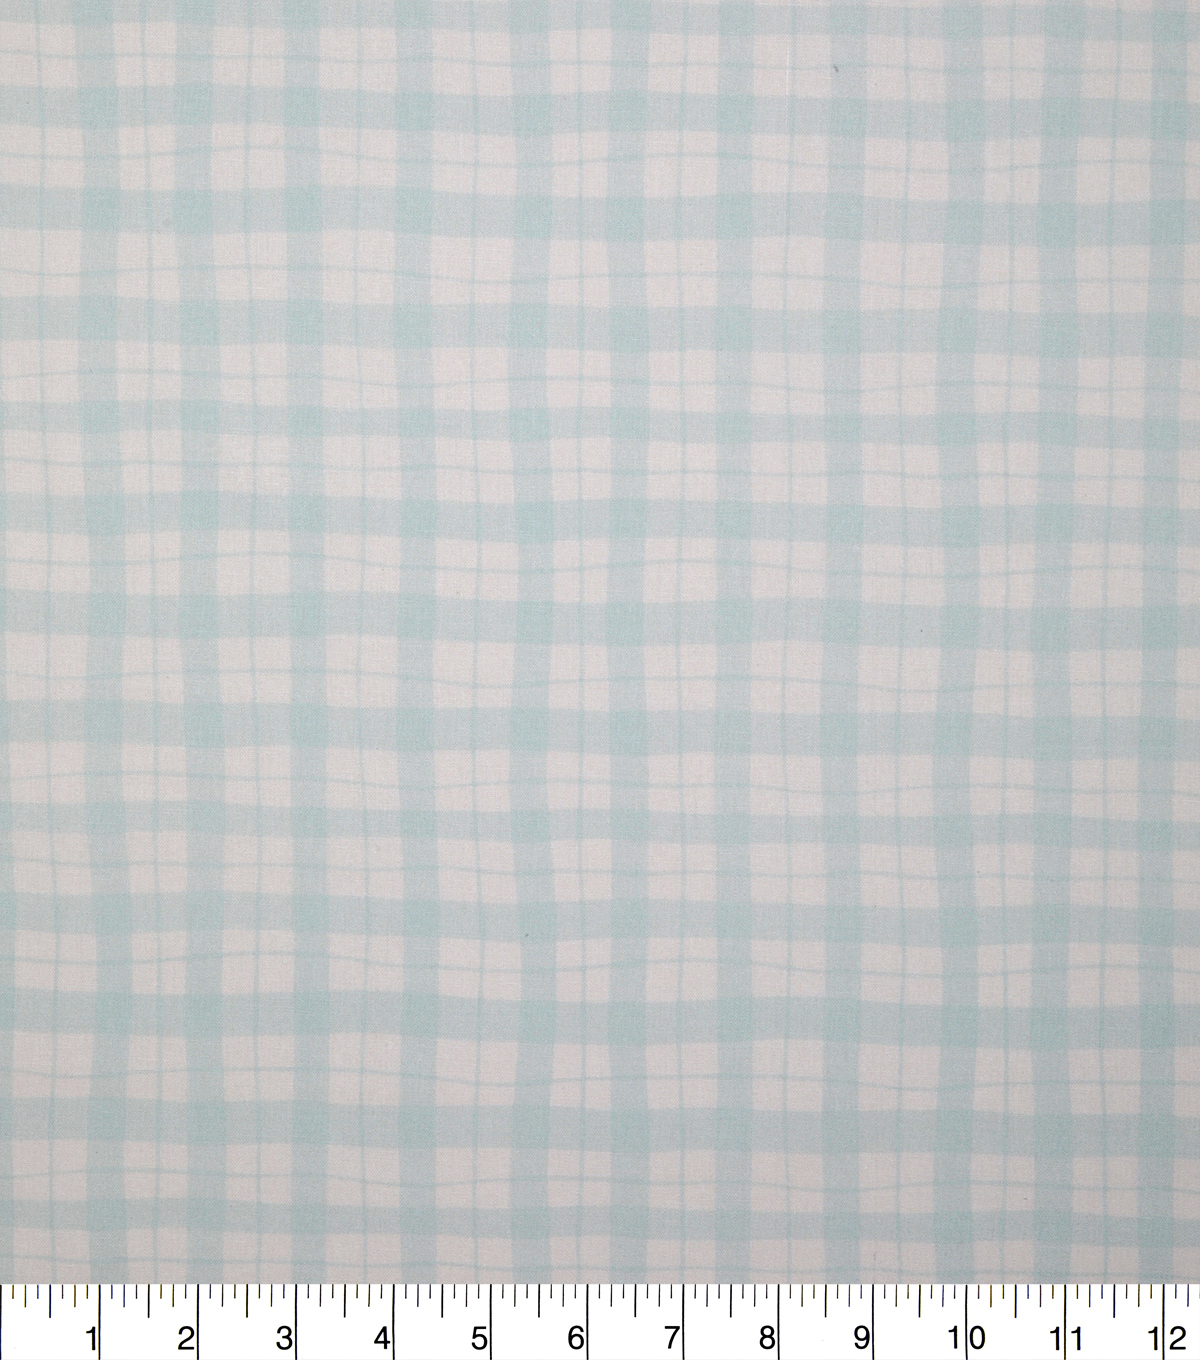 Keepsake Calico Cotton Fabric-Light Teal Wavy Gingham